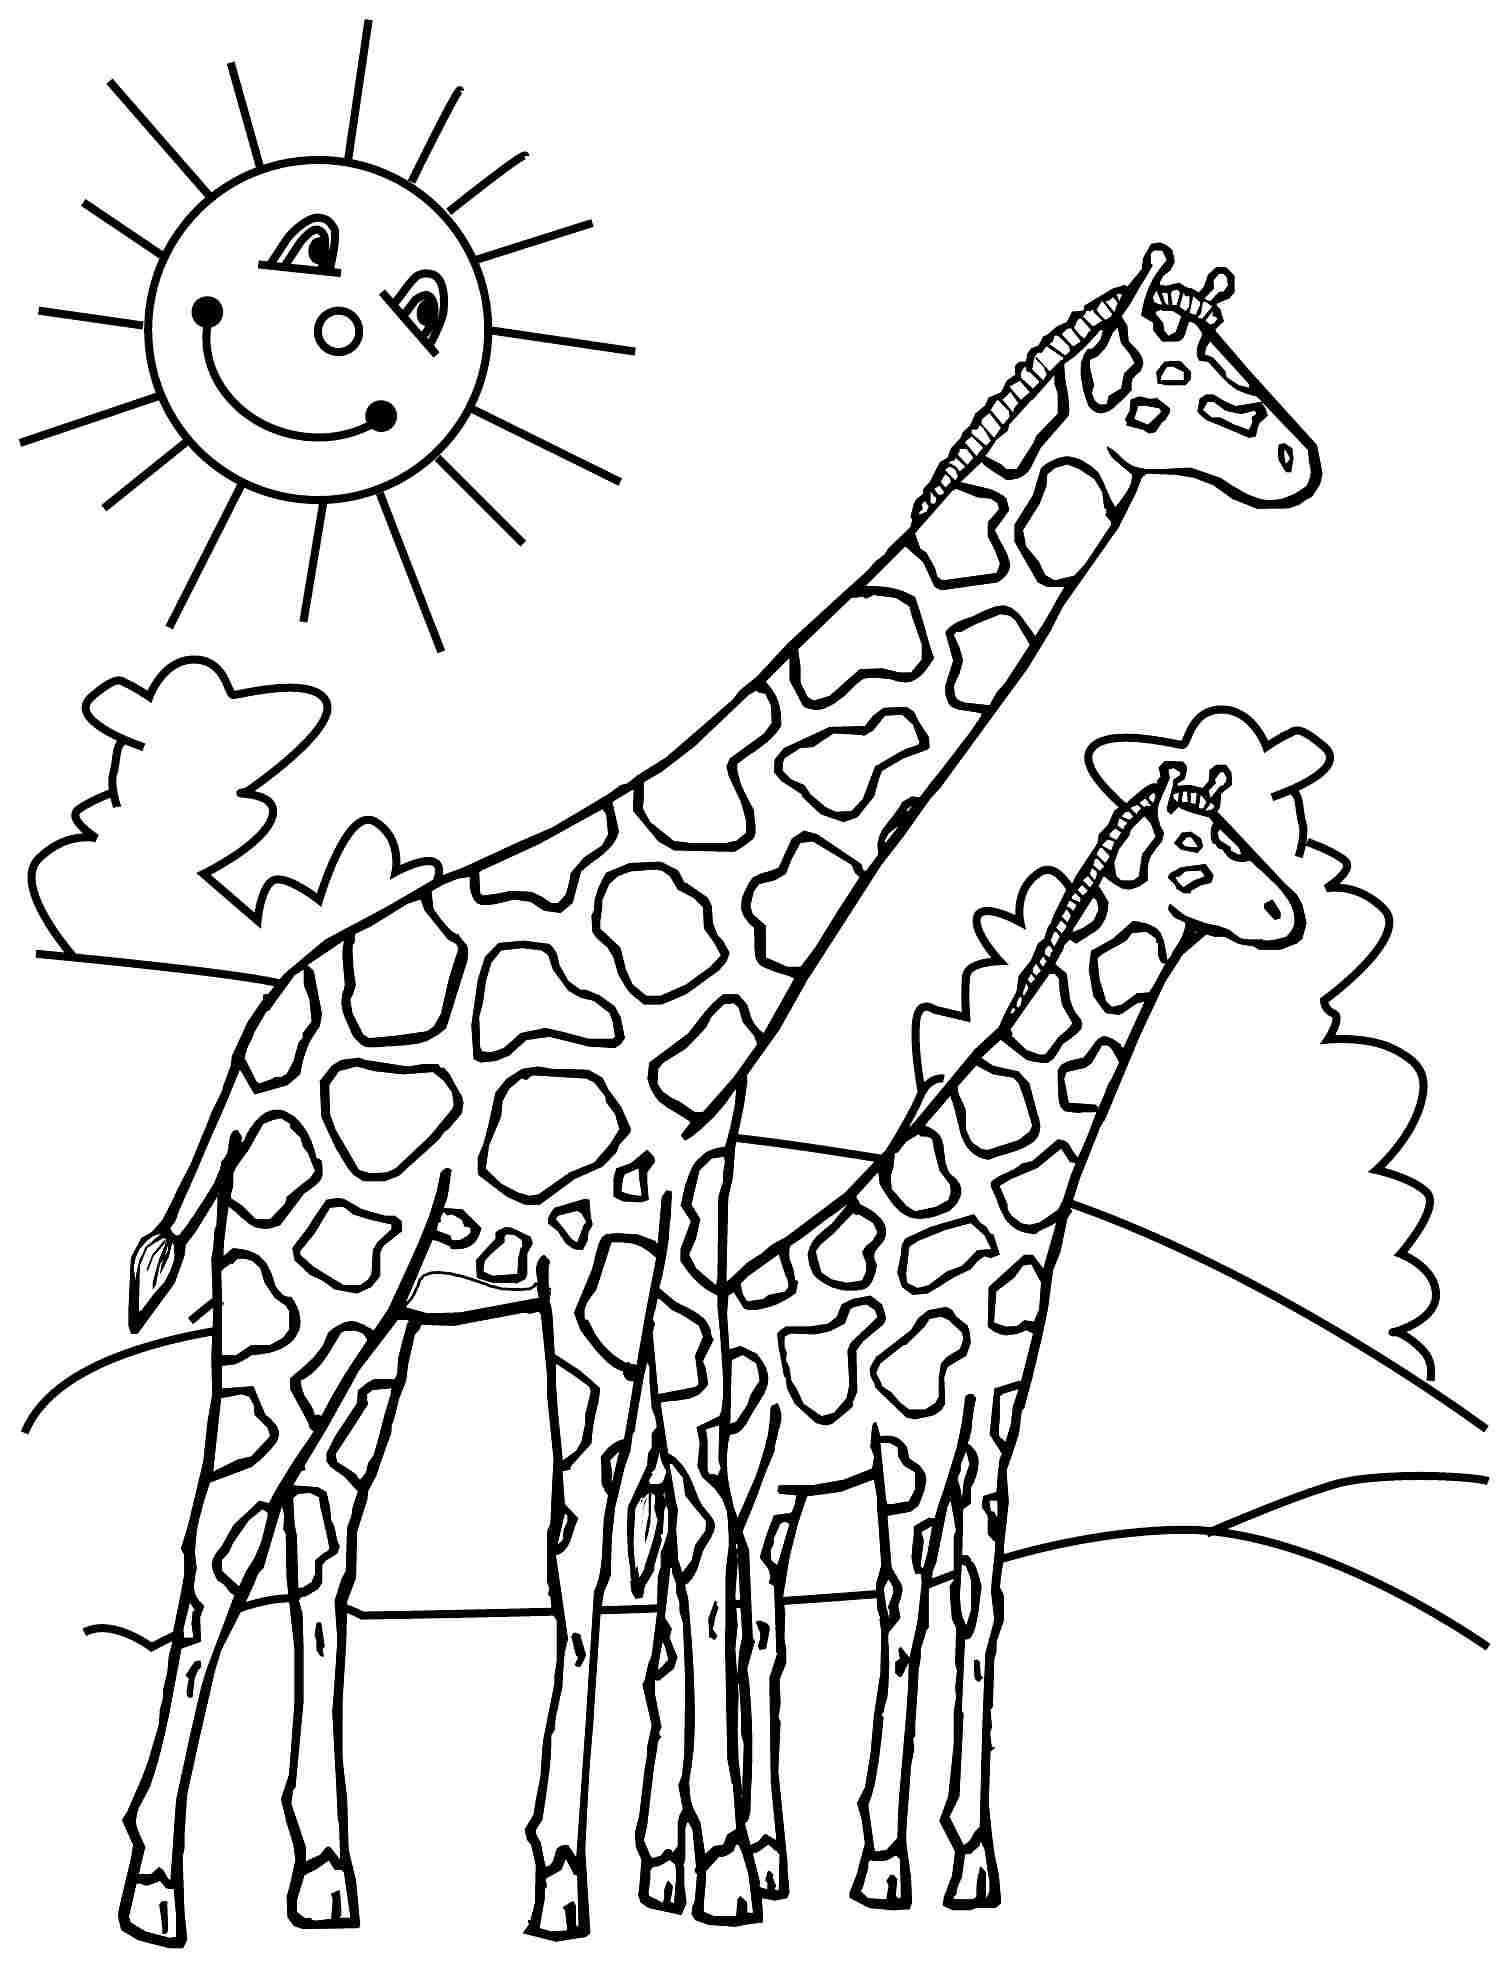 coloring images to print 40 free printable coloring pages for kids images coloring print to